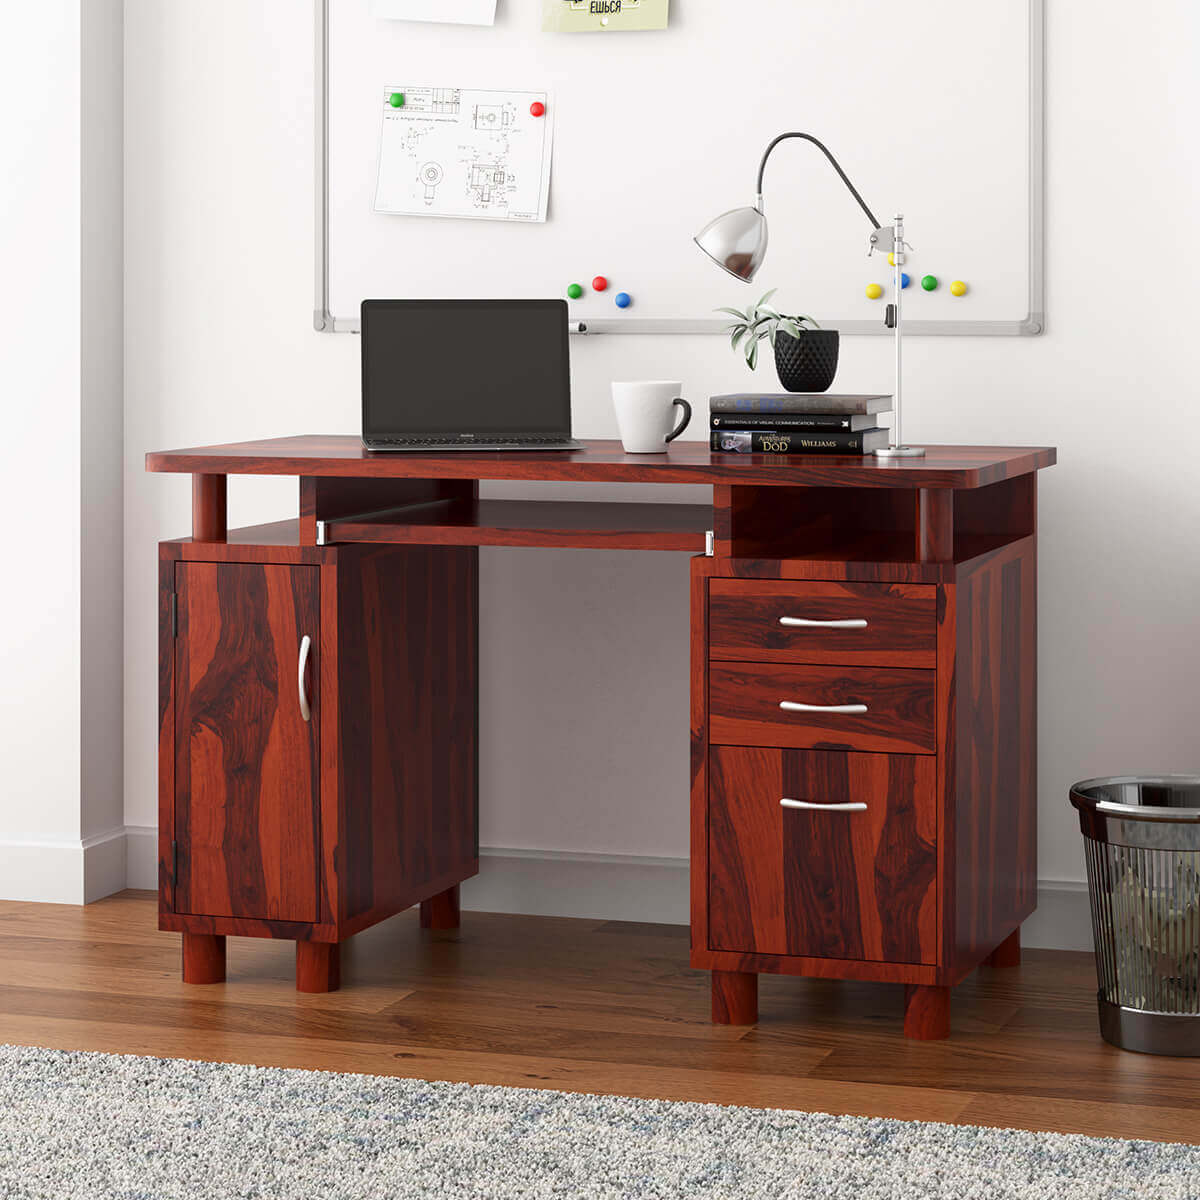 Solid Wood File Cabinet Picacho Solid Wood Home Office Computer Desk With File Cabinet